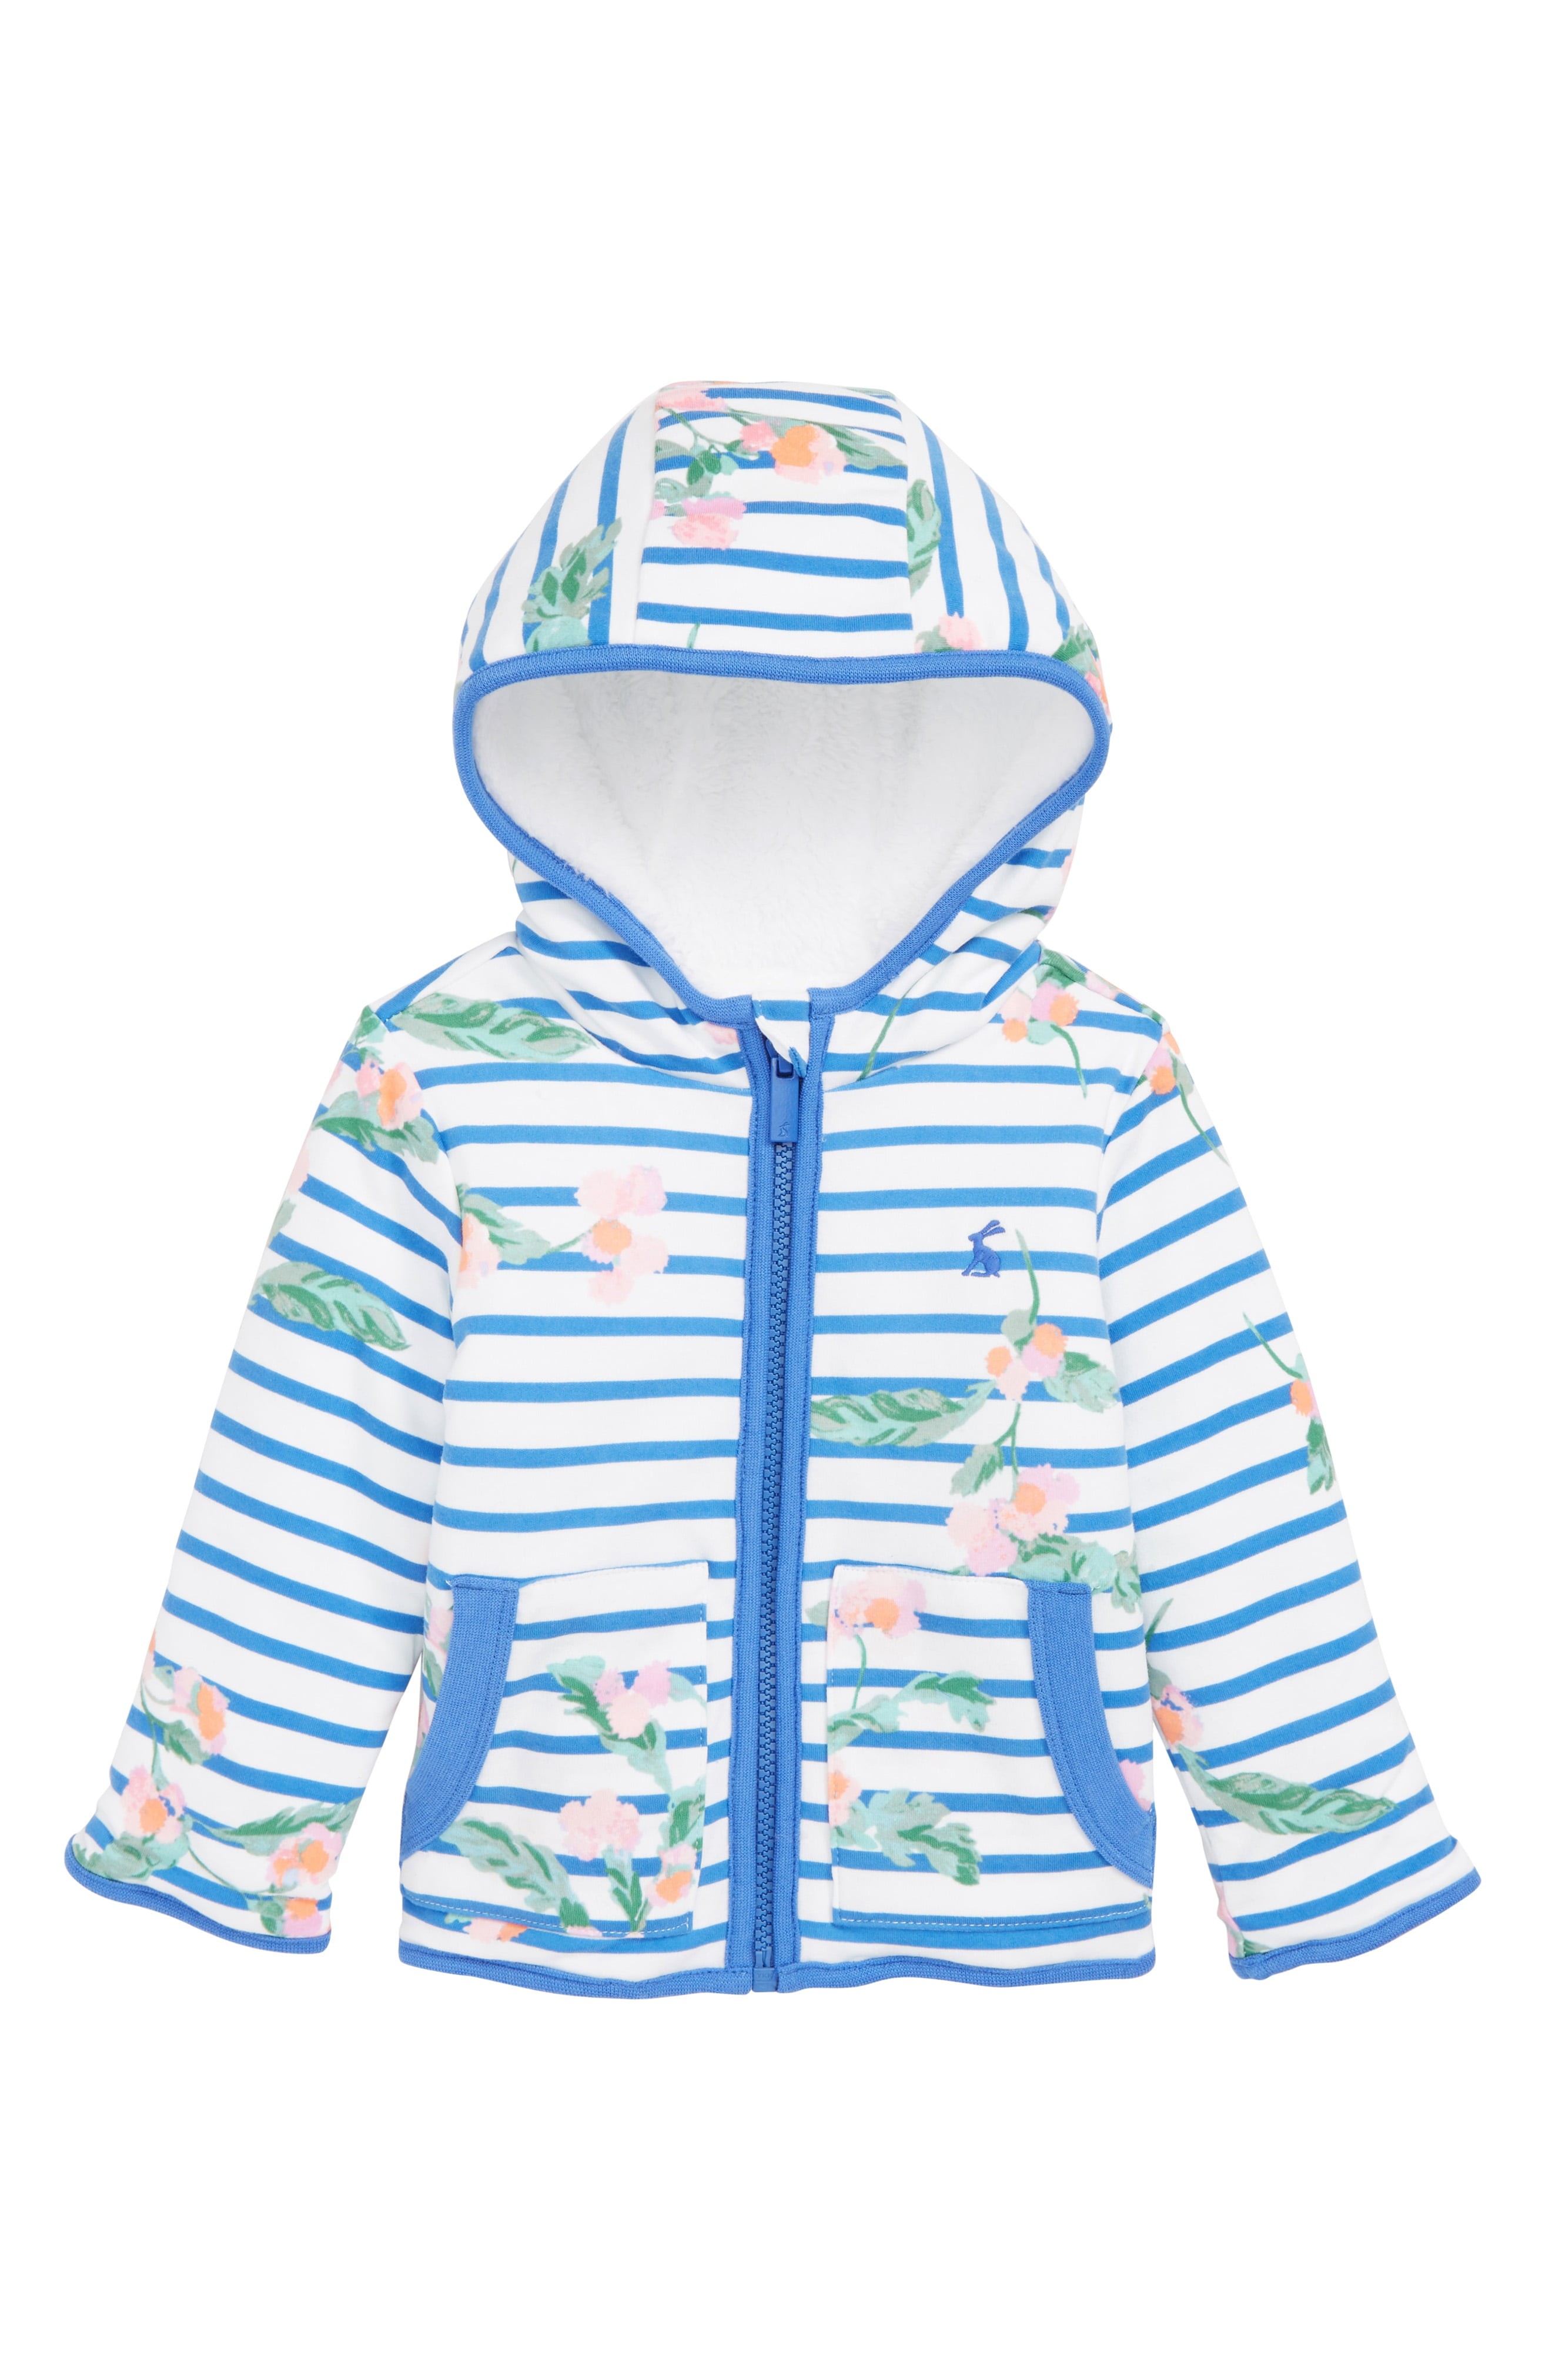 Joules Baby Cosette Reversible Jacket in WHITE STRIPE FLORAL Size Newborn